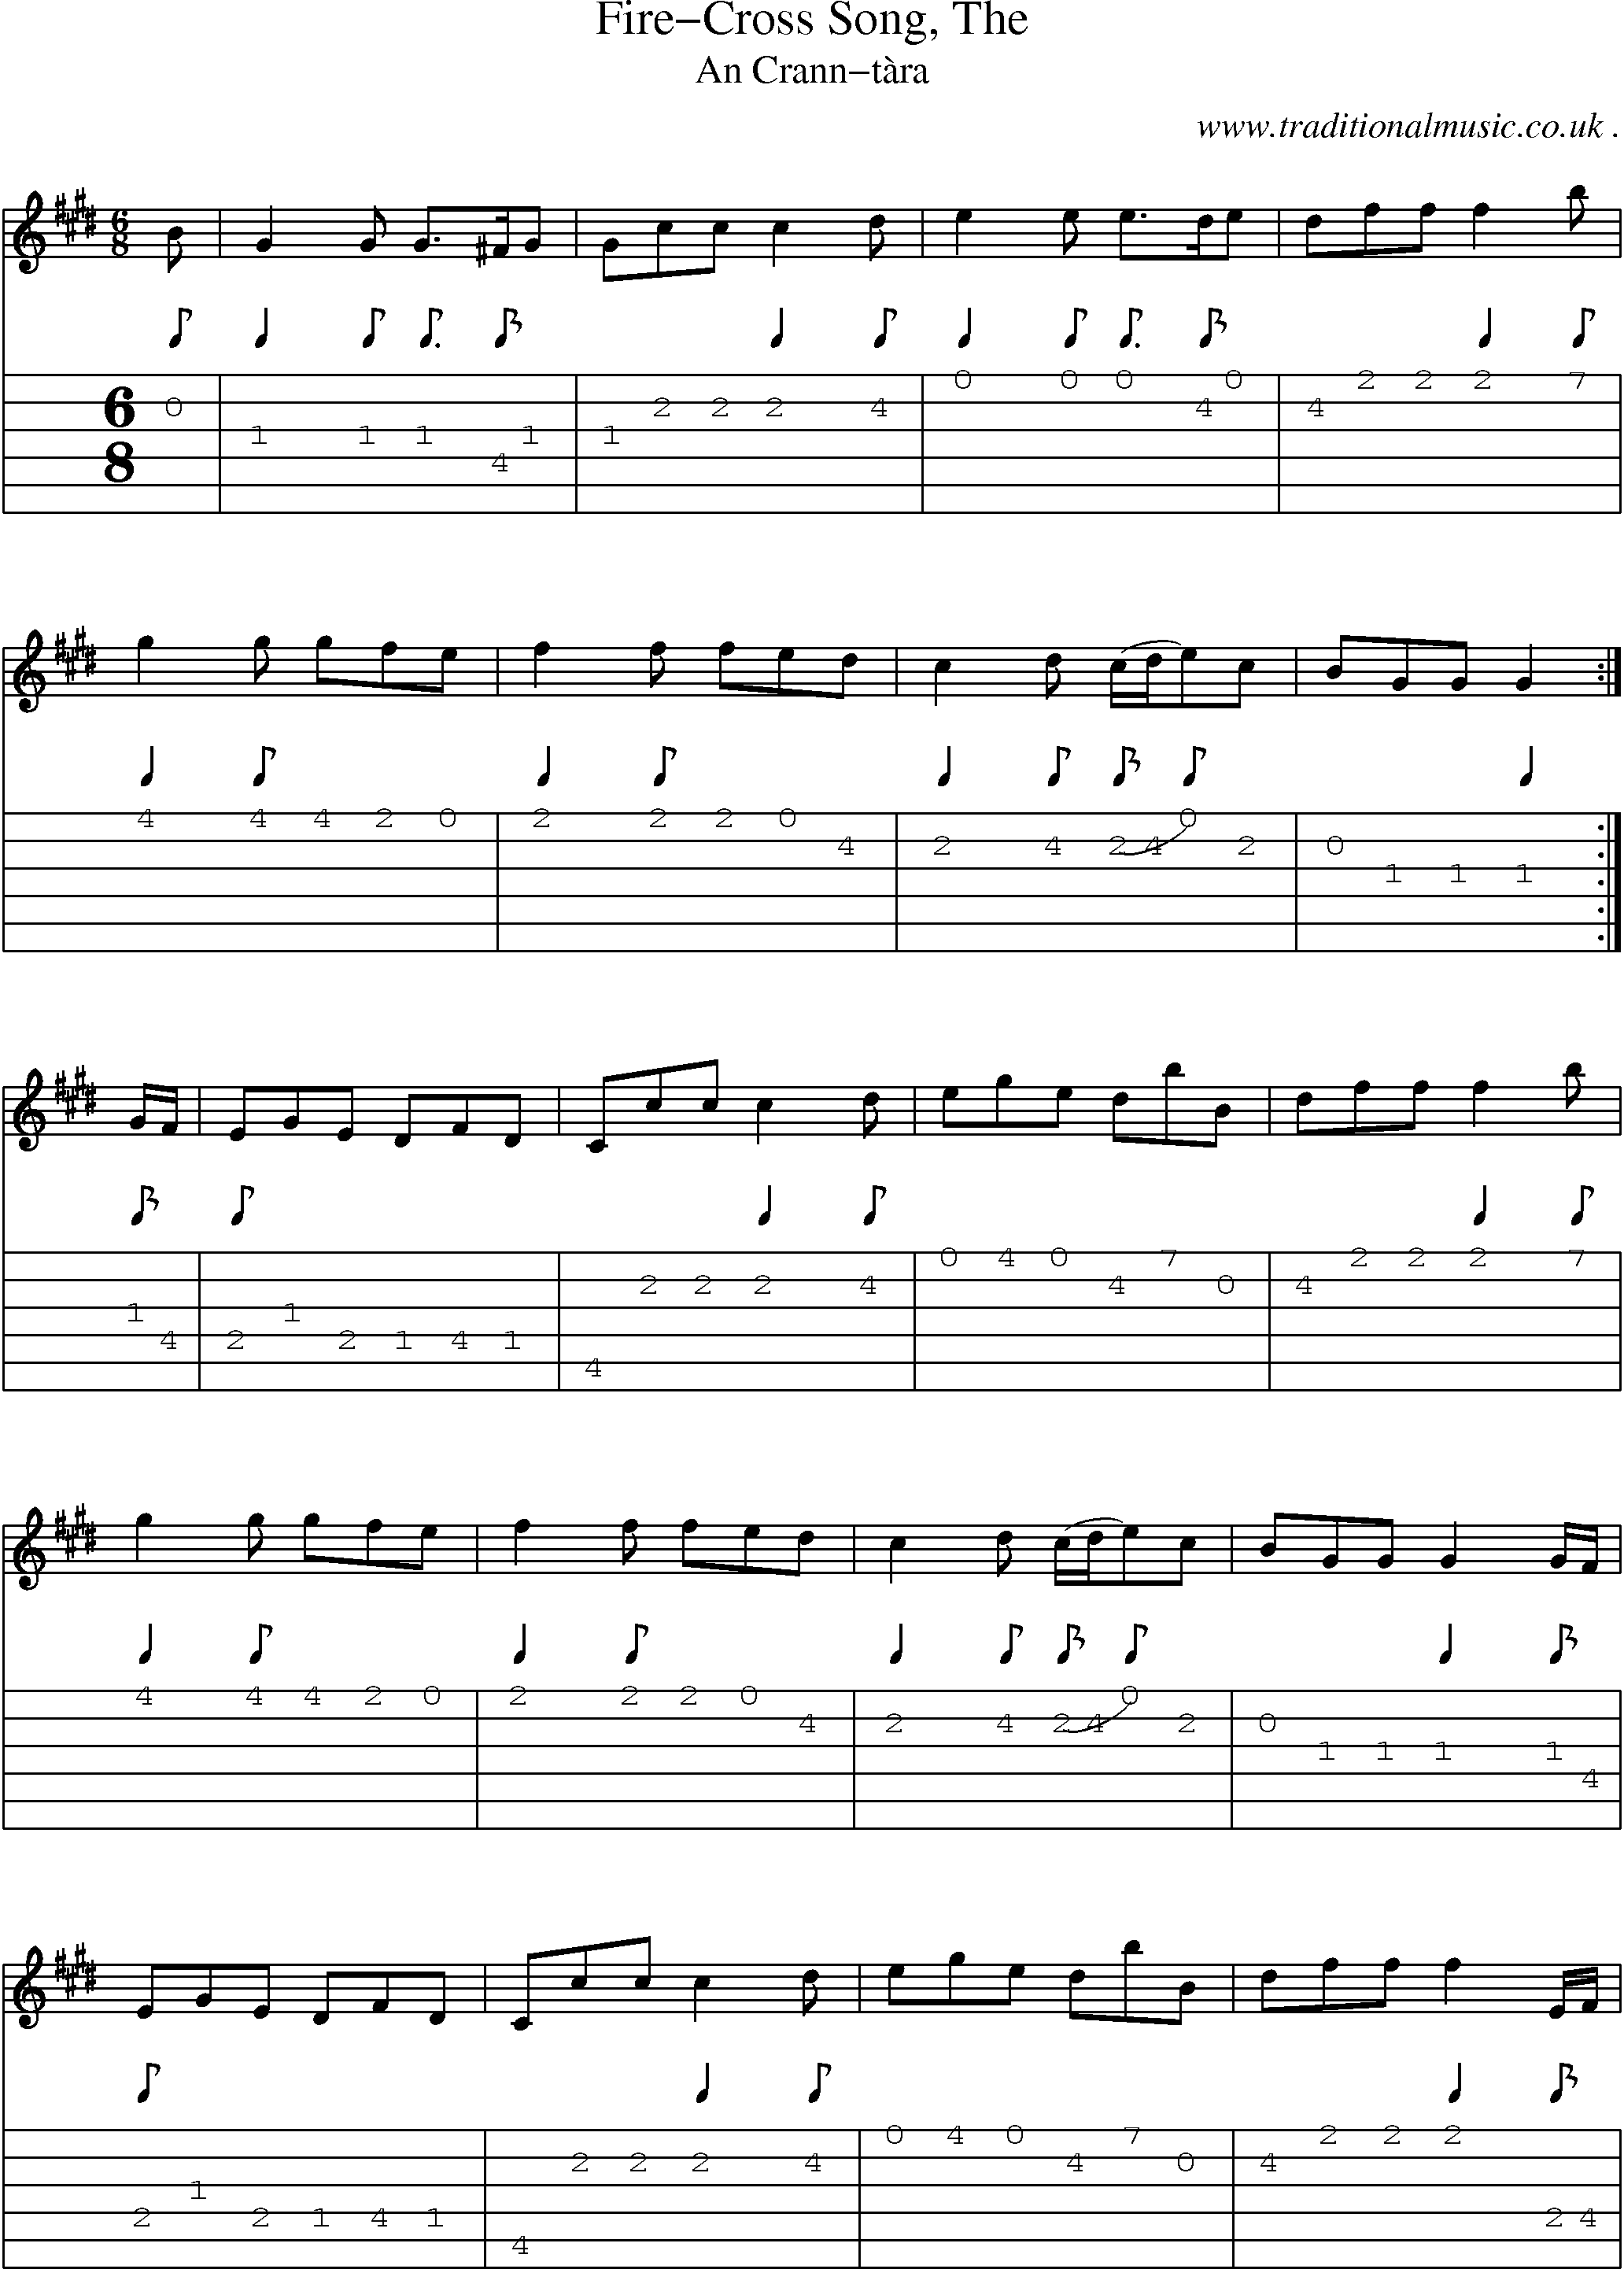 Scottish Tune Sheetmusic Midi Mp3 Guitar Chords Tabs Fire